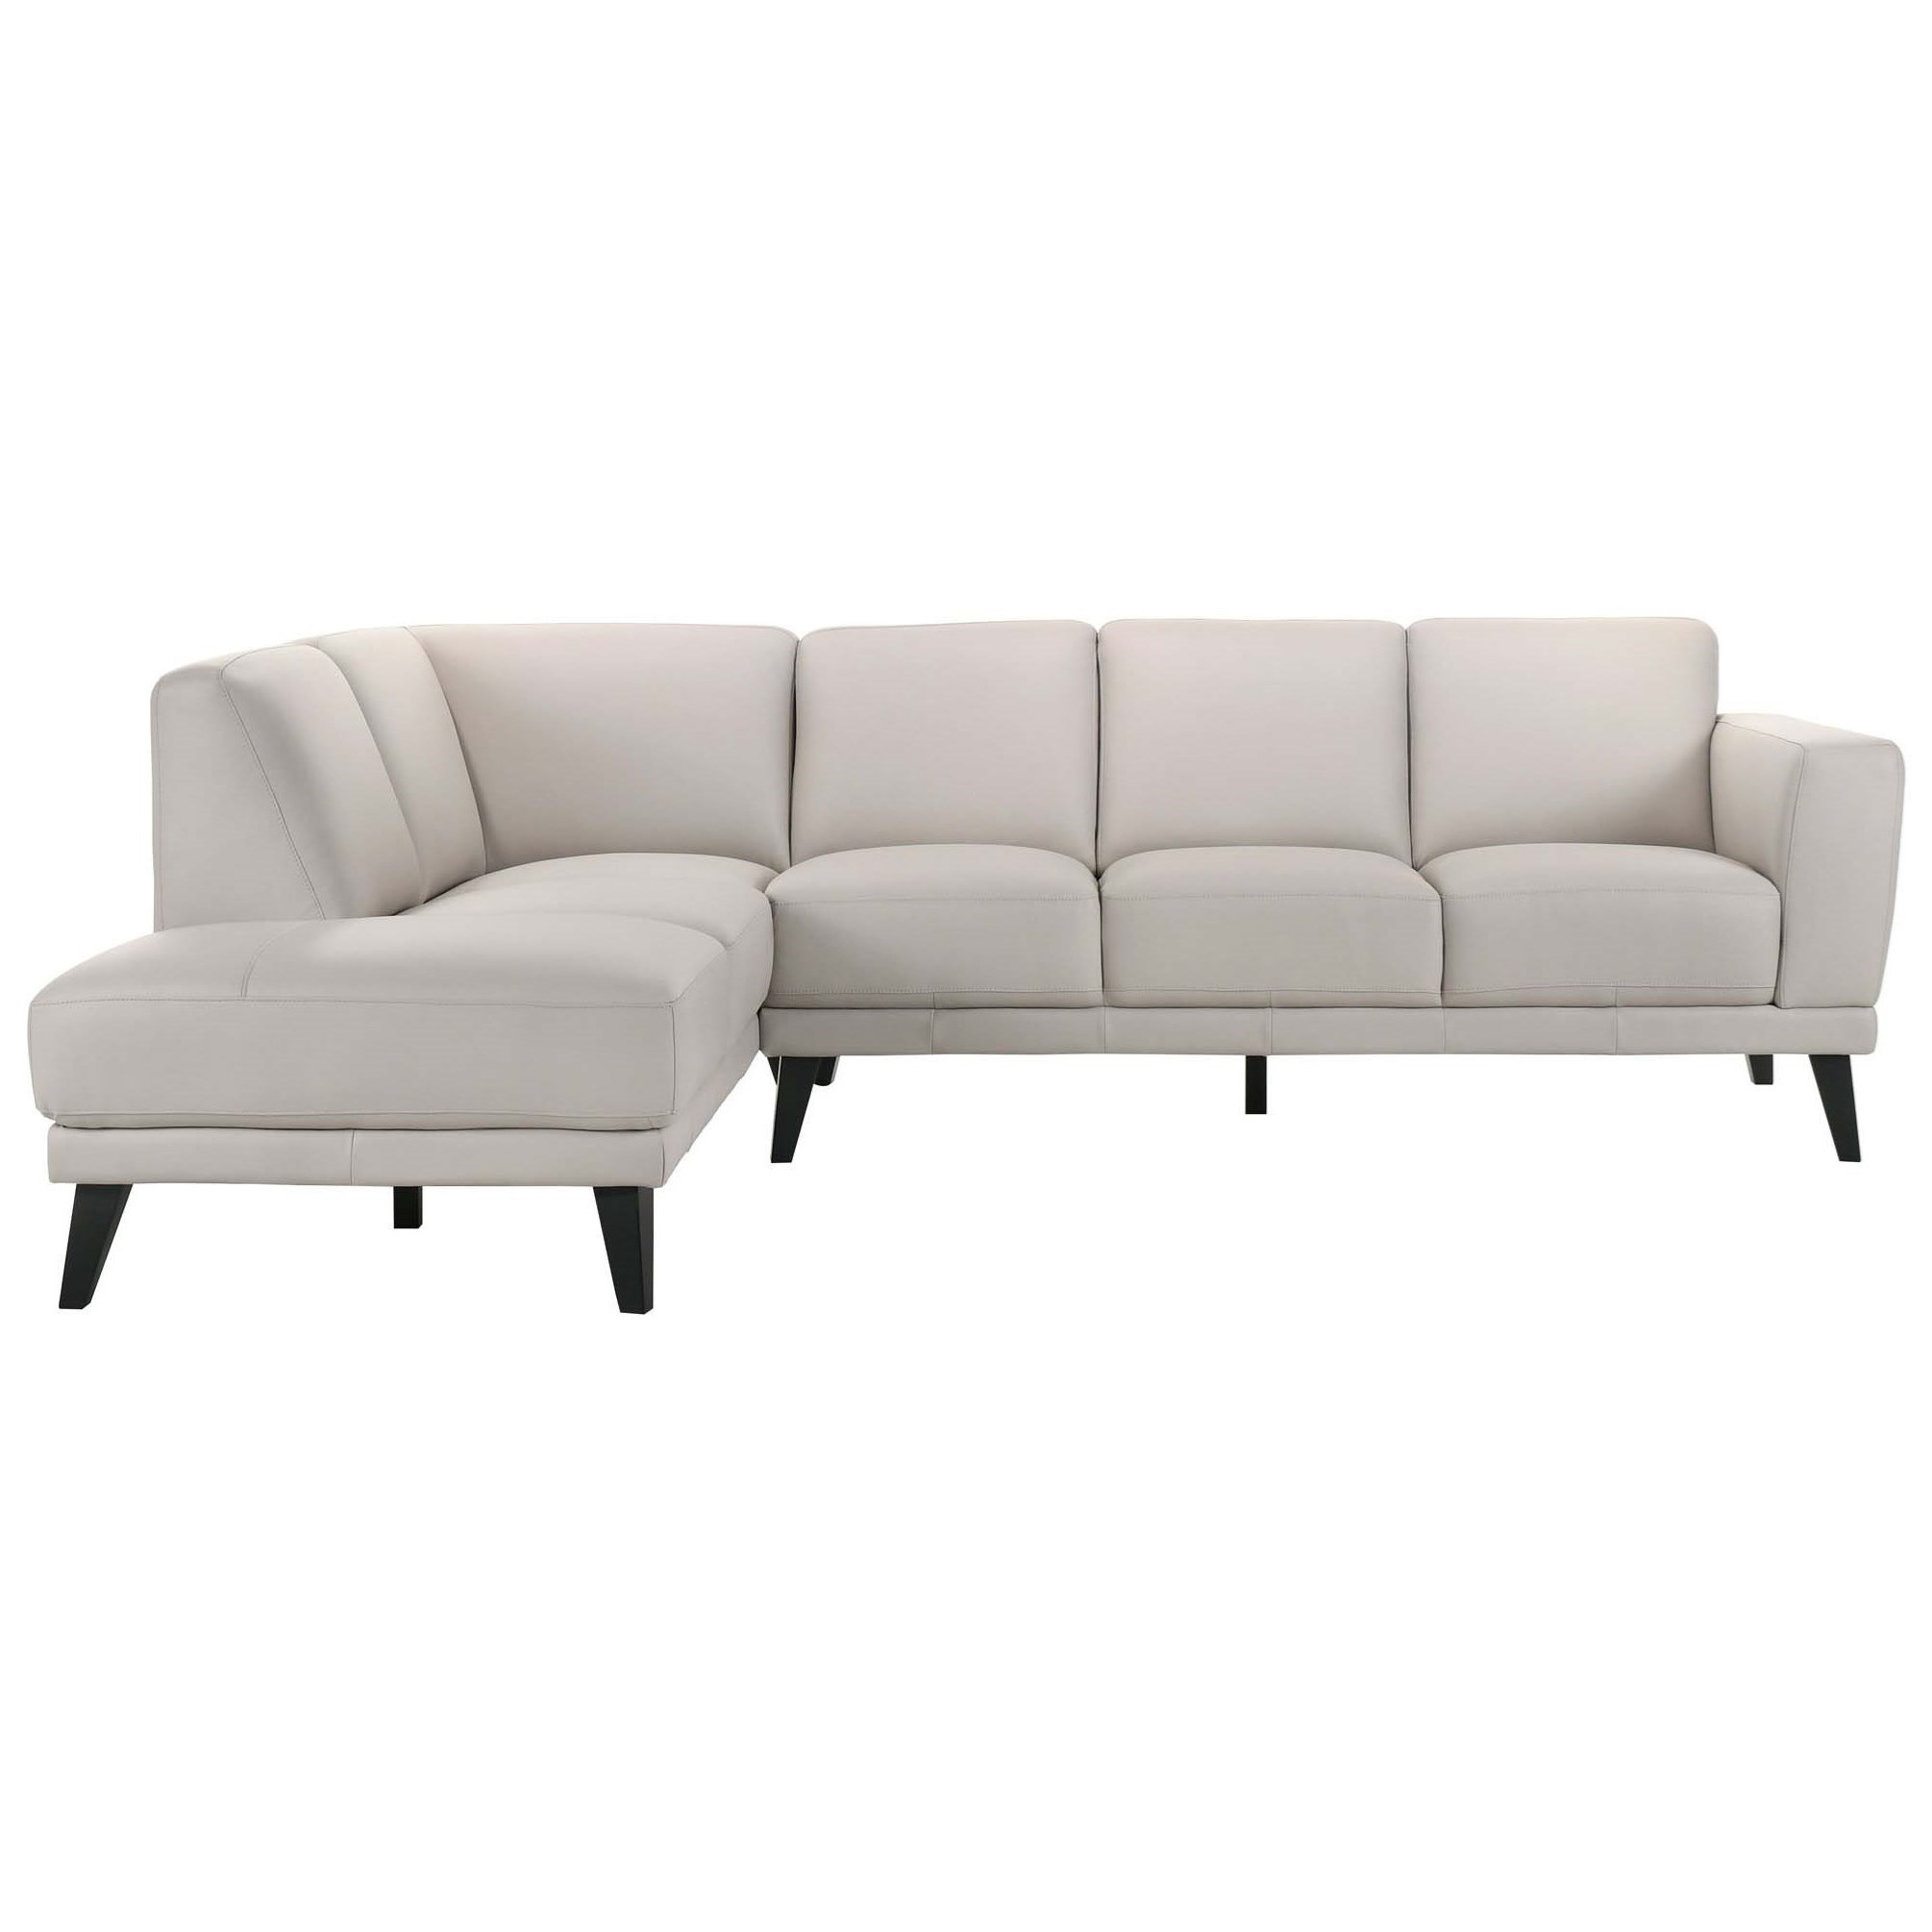 Altamura 5-Seat Sectional w/ LAF Chaise by New Classic at Beds N Stuff